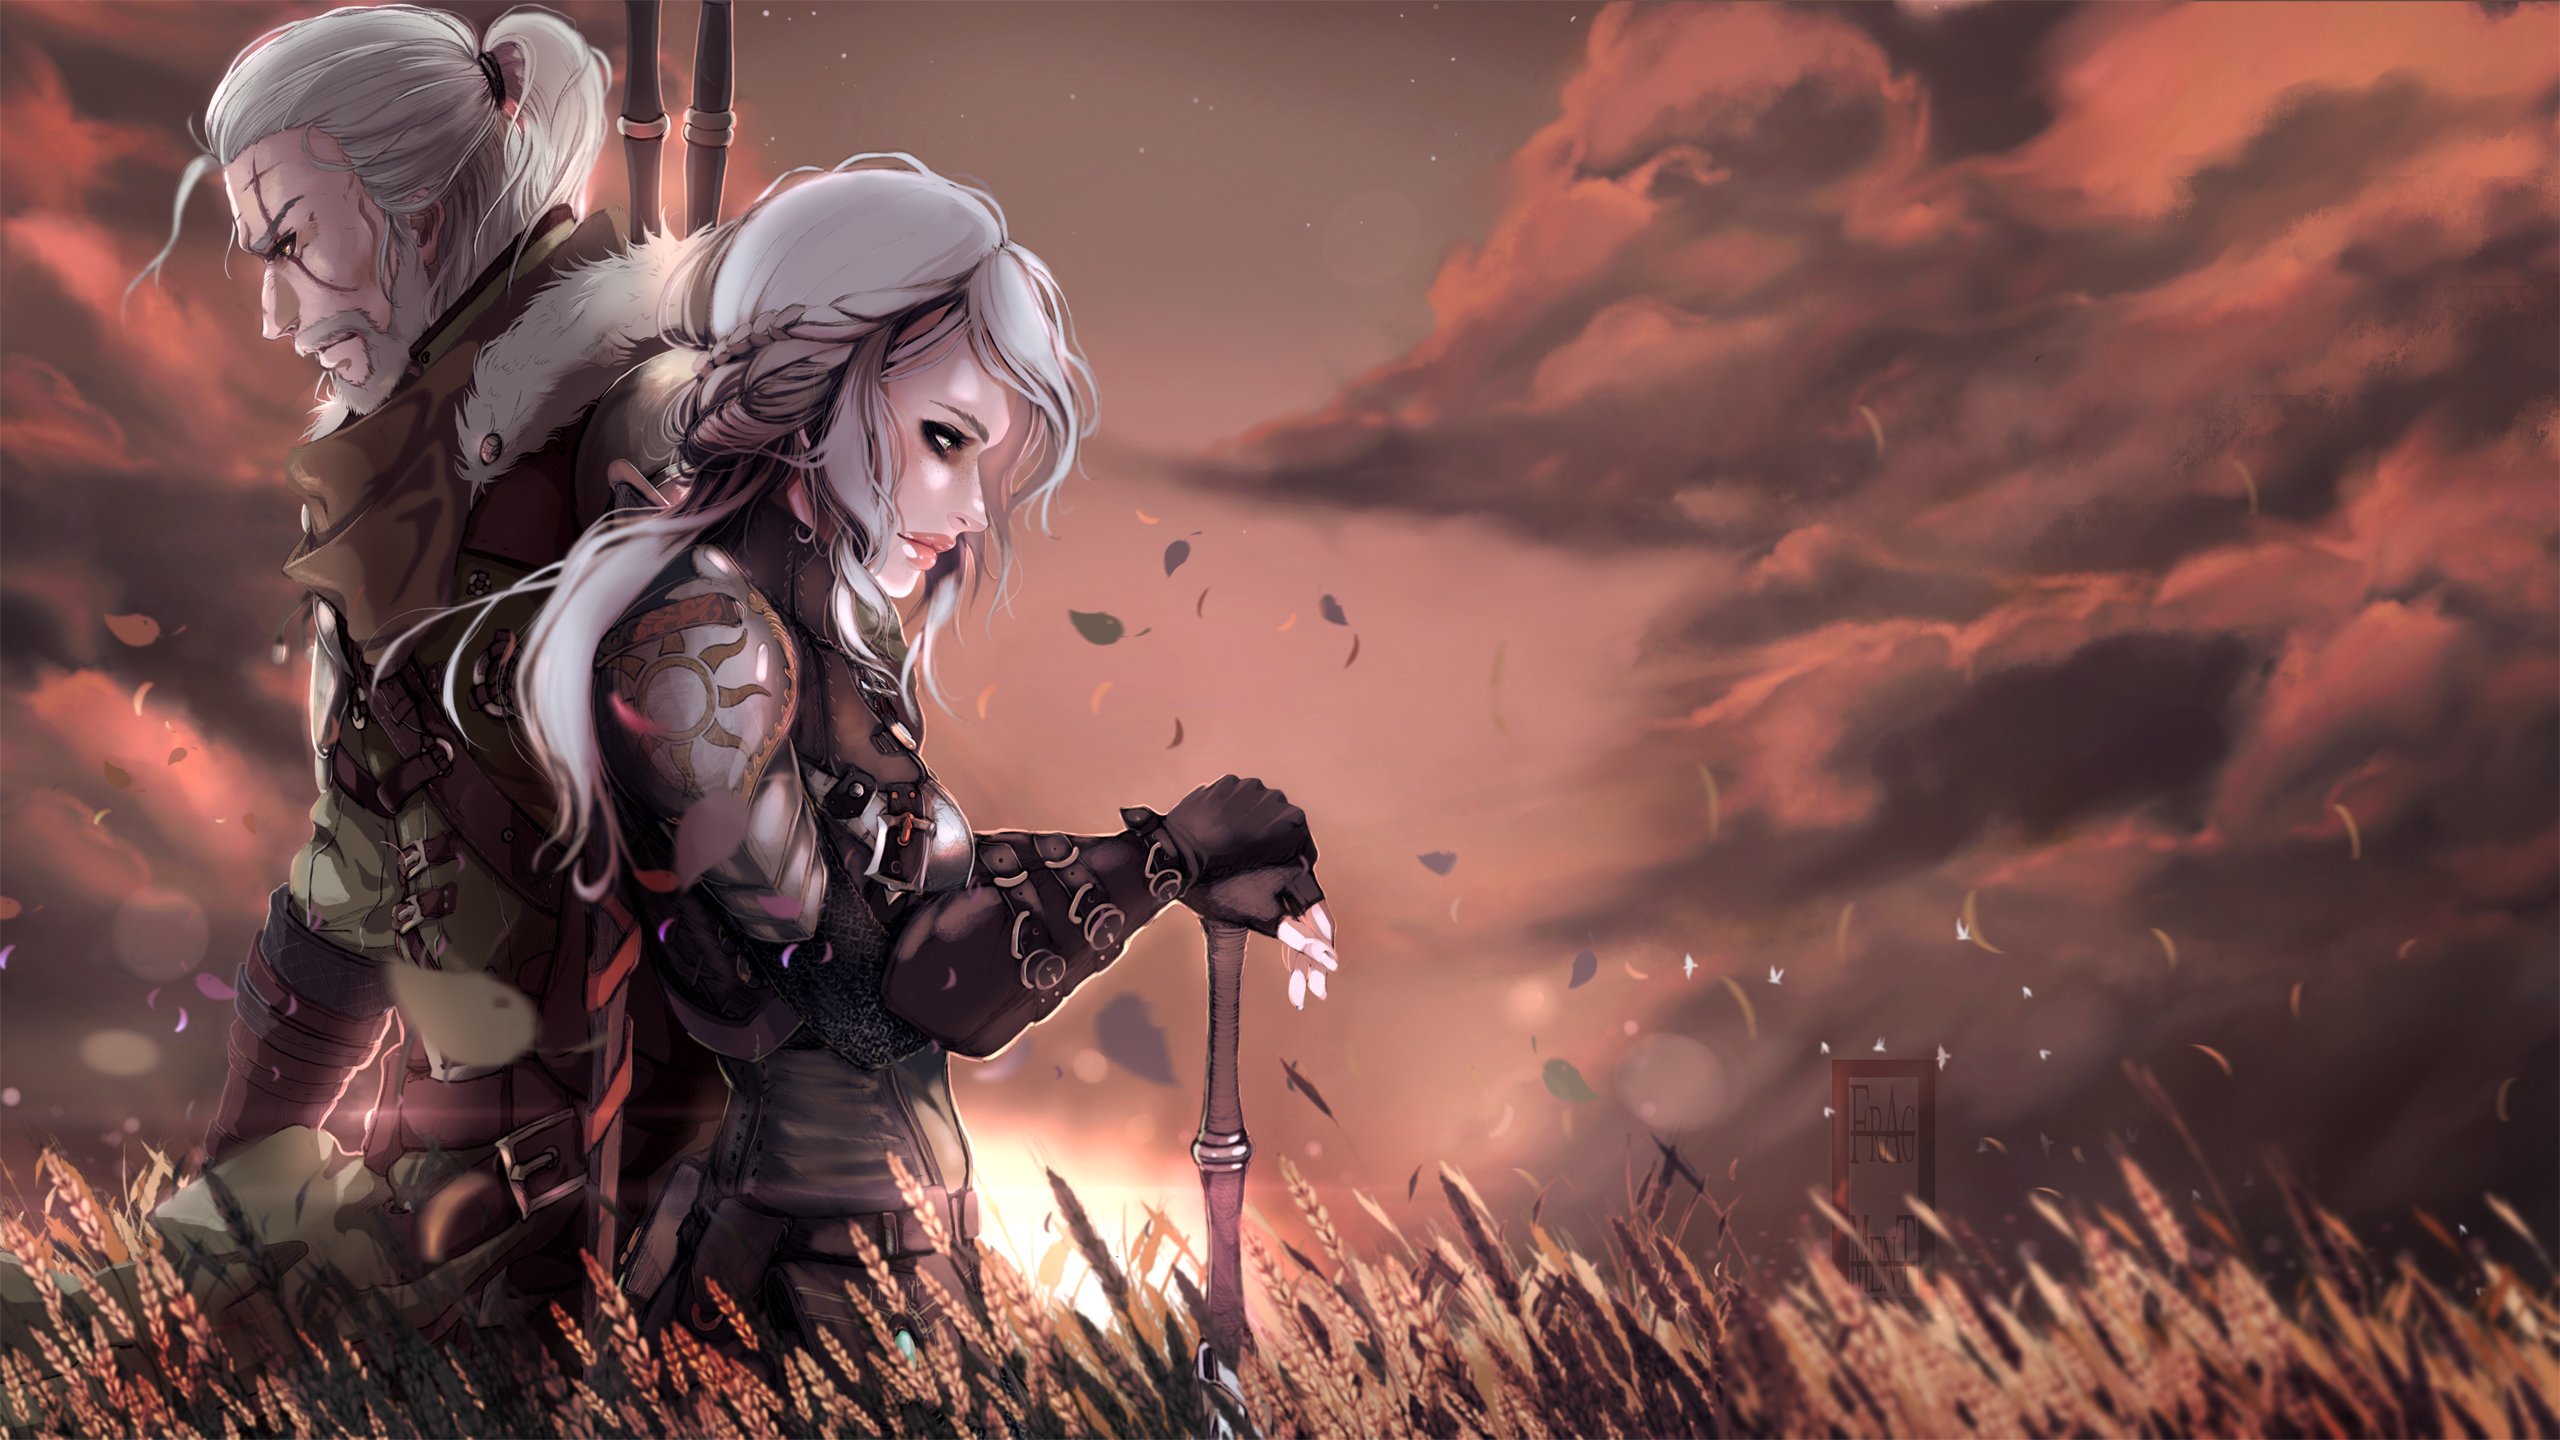 filter:The Witcher 3: Wild Hunt, Wallpaper